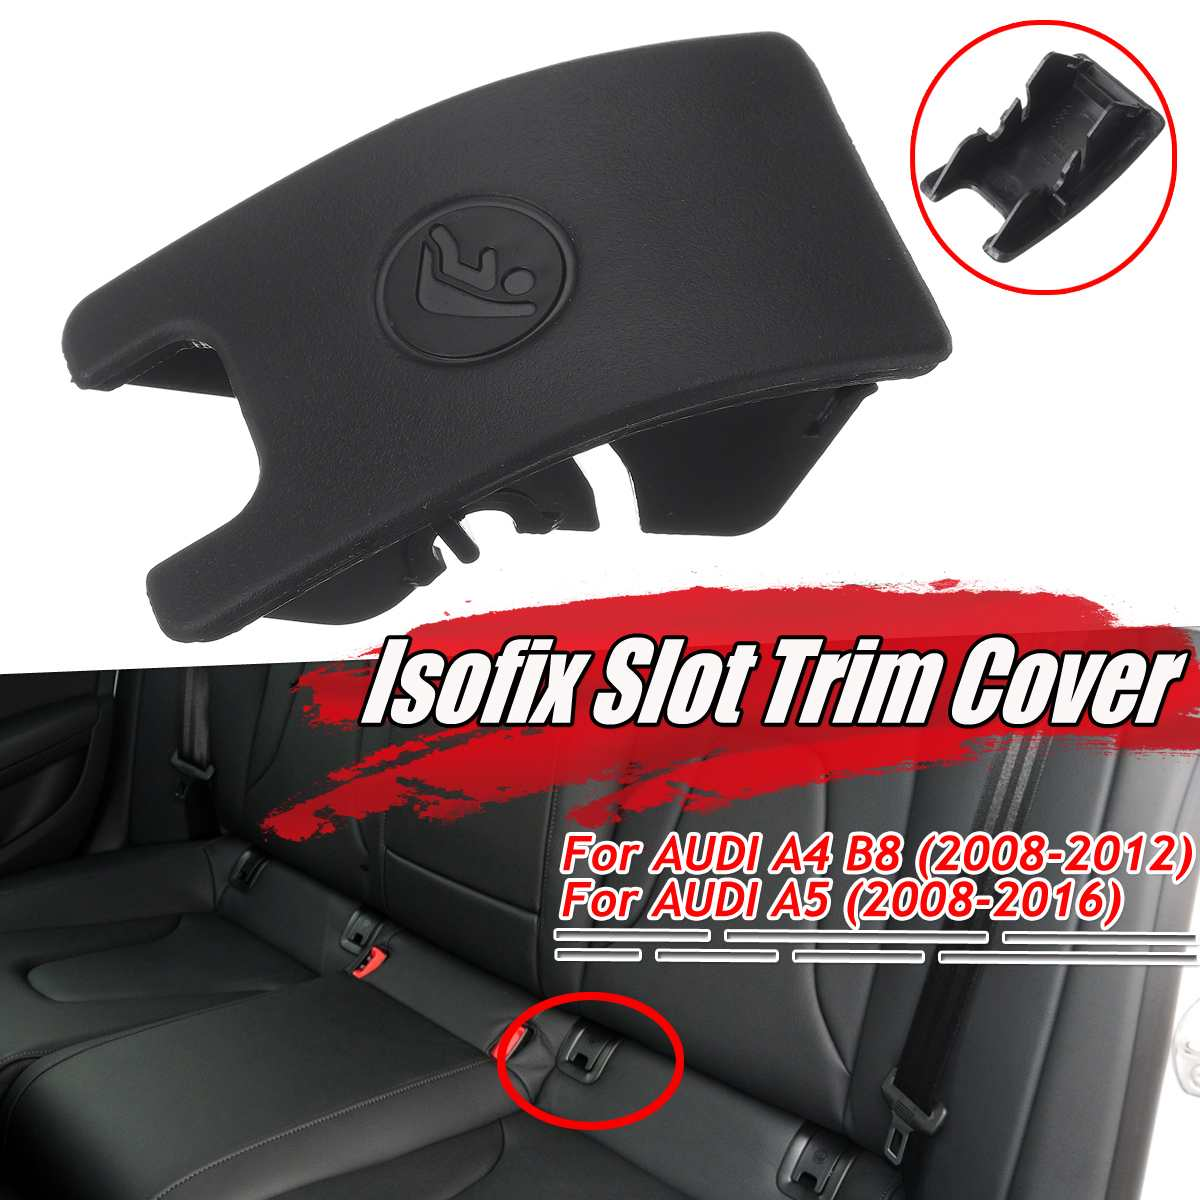 Black/Grey Car Rear Child Seat Safety Anchor Isofix Slot Trim Cover For AUDI A4 B8 A5 8T0887187 Car ISOFiX Cover Child Restraint